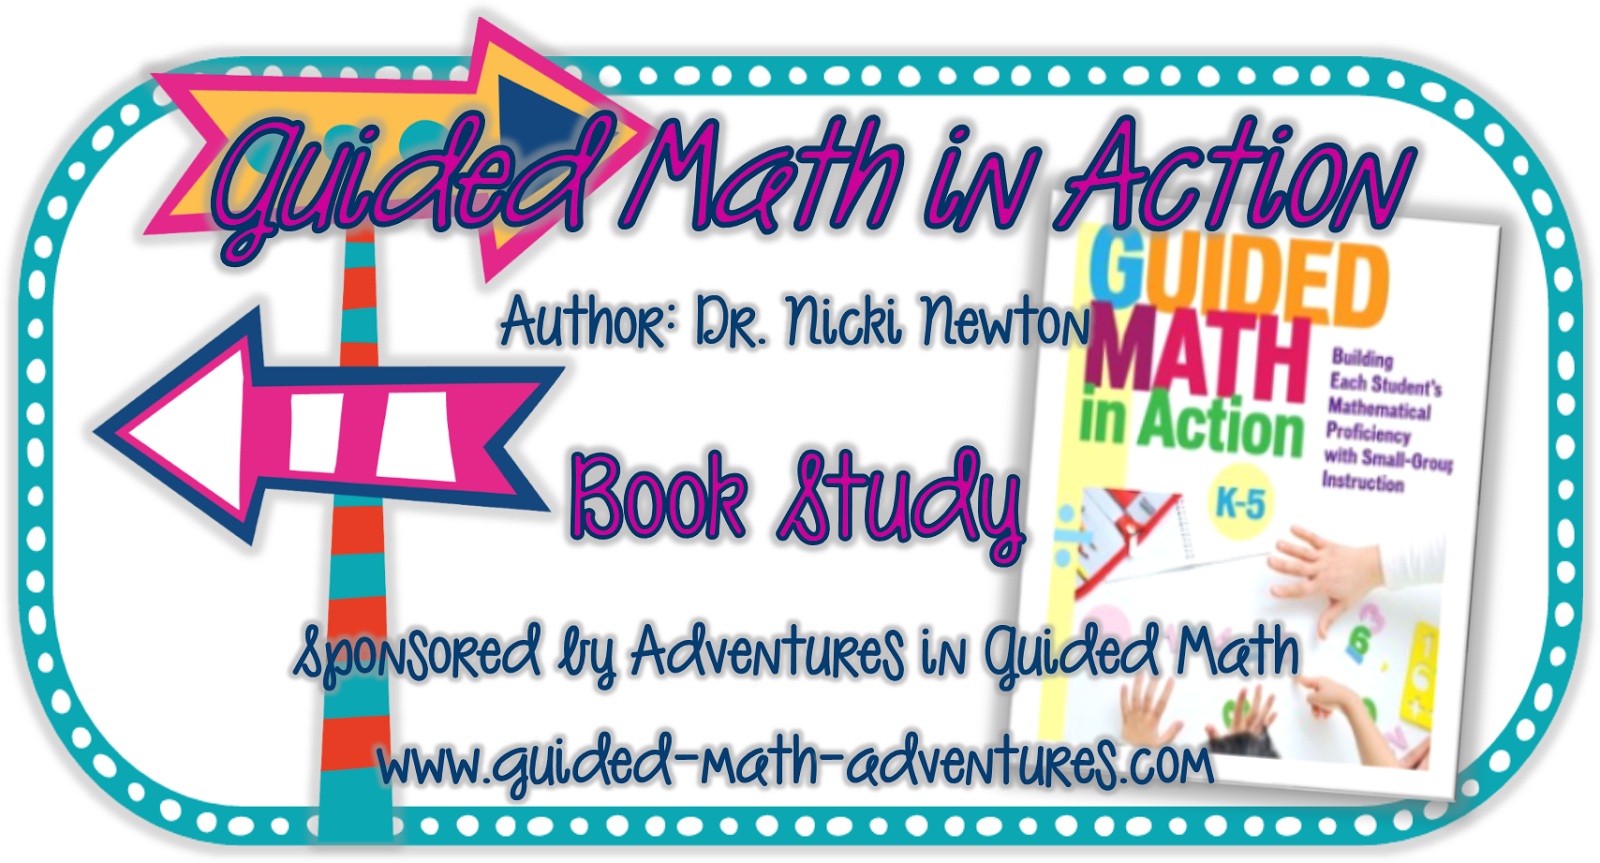 http://www.guided-math-adventures.com/2014/07/the-adventure-begins-with-book-study.html